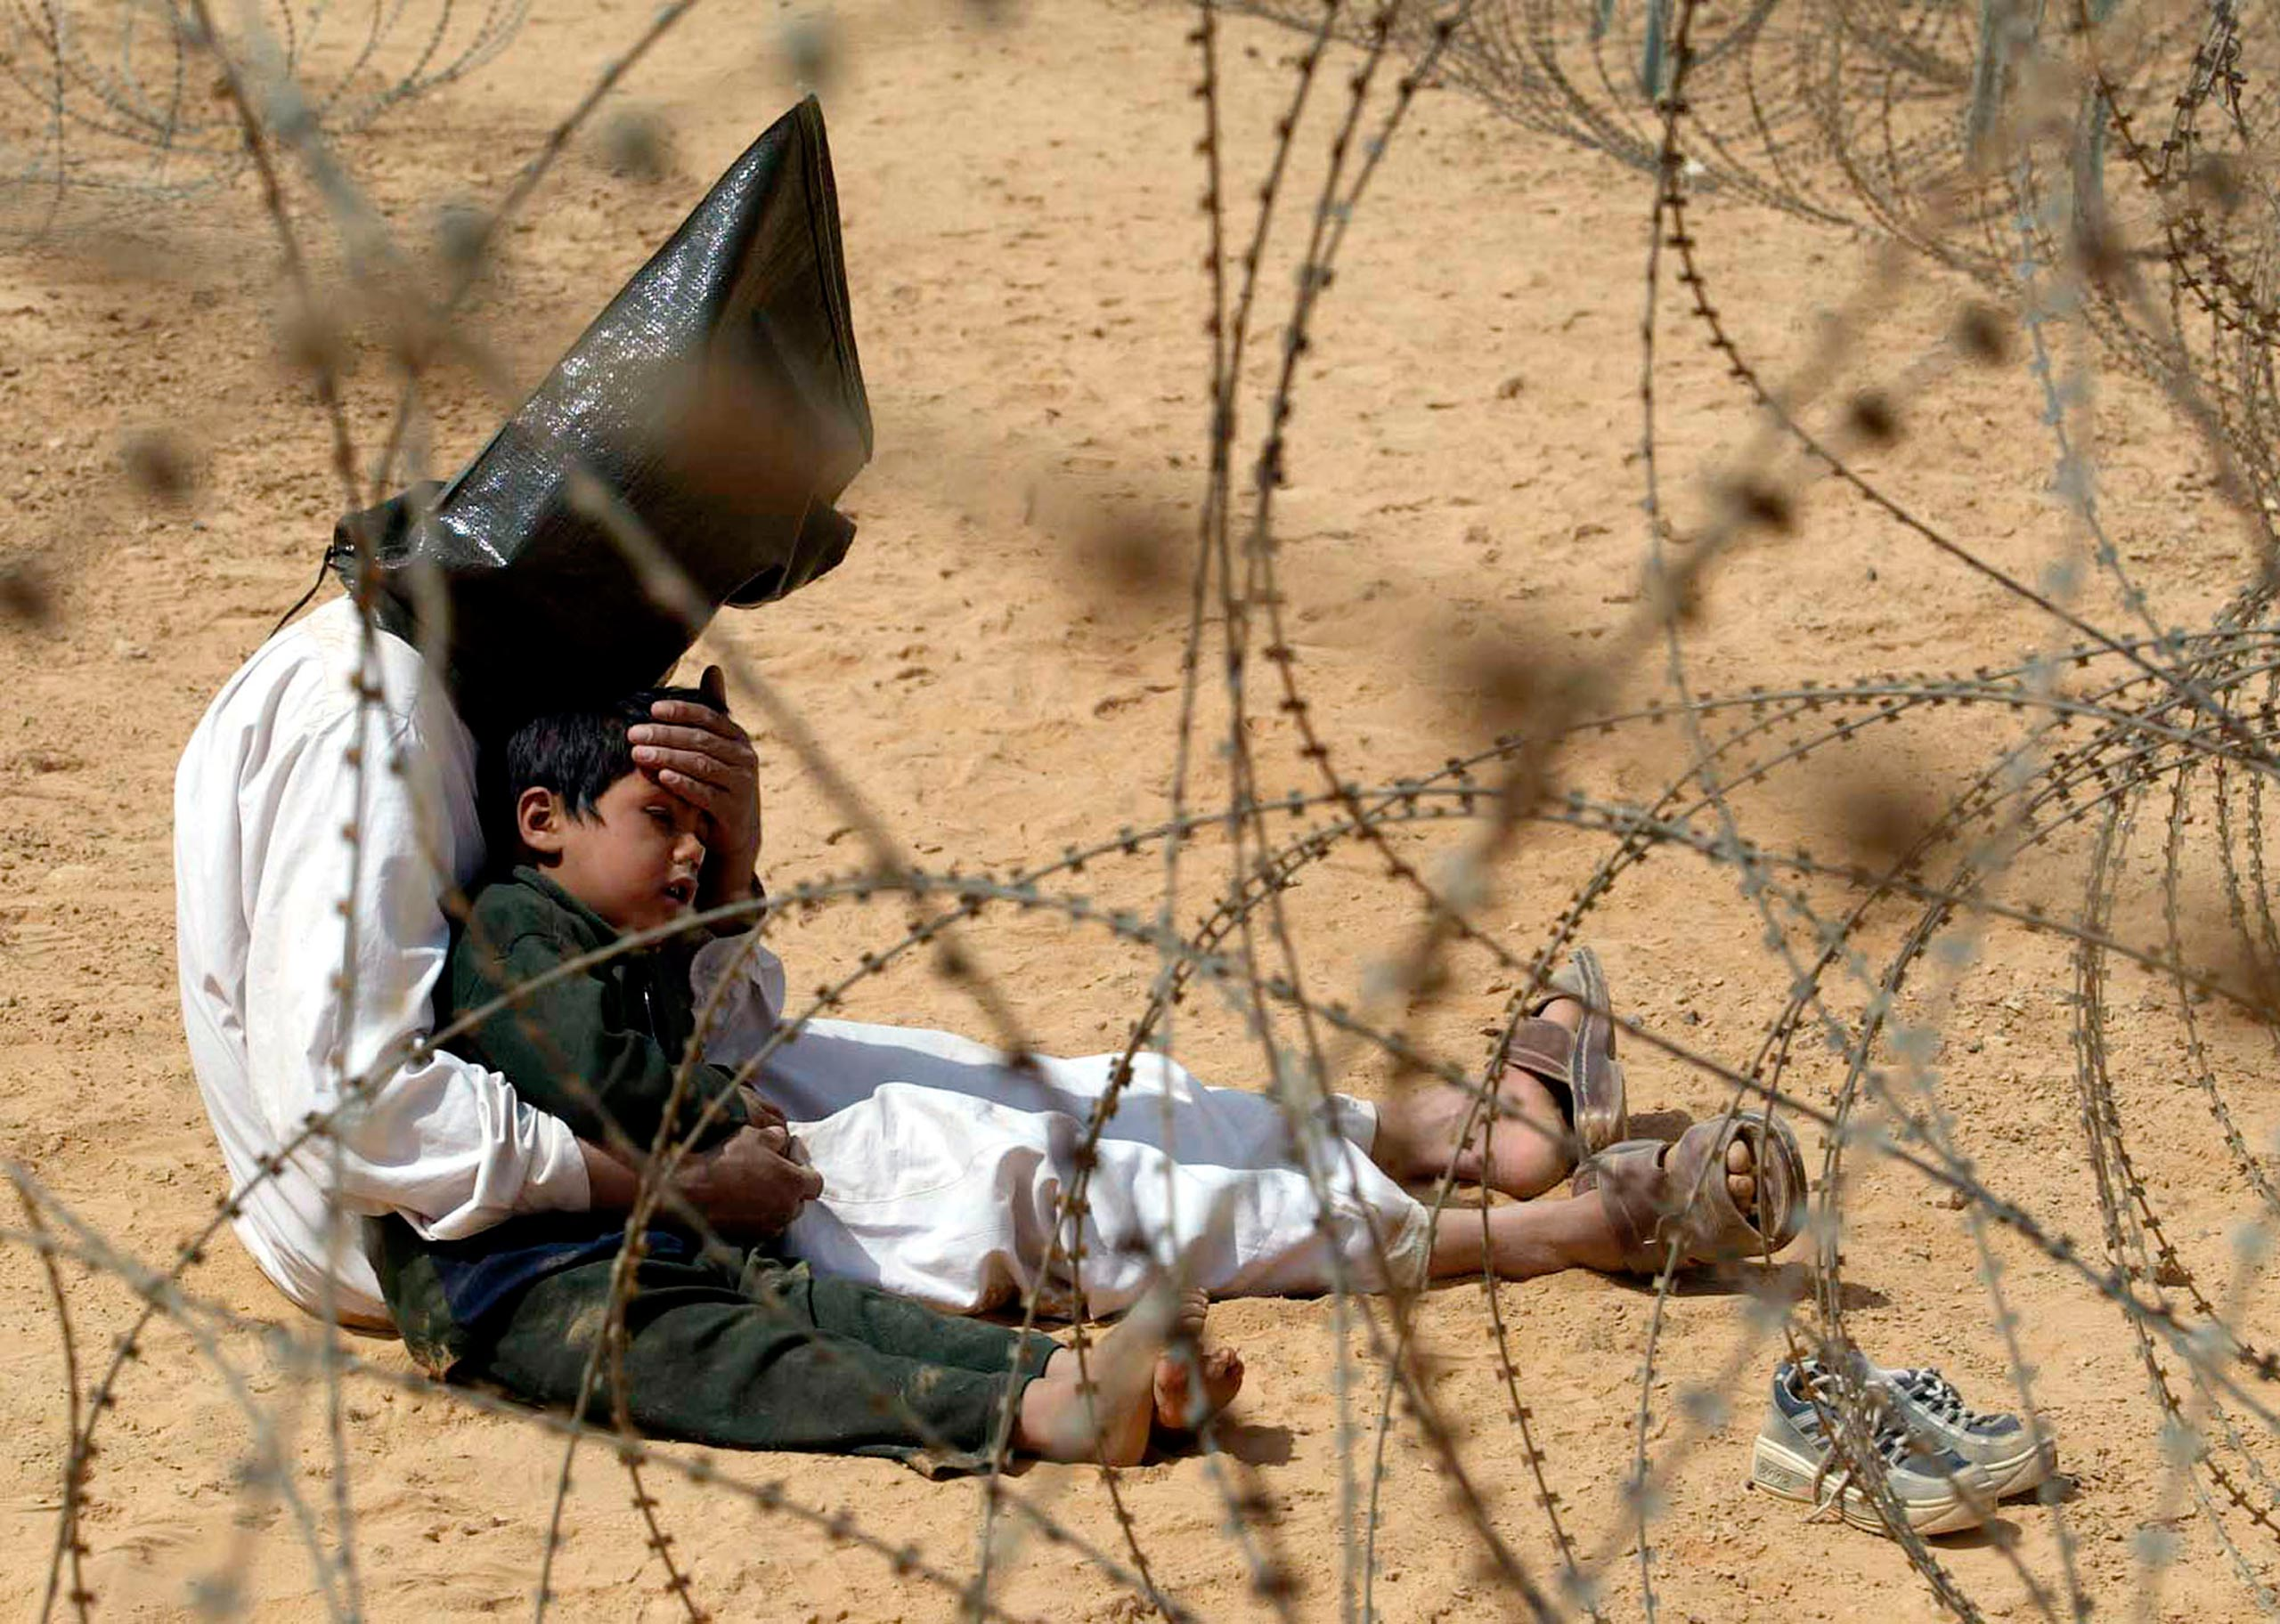 An Iraqi prisoner of war comforts his 4-year-old son at a regroupment center for POWs of the 101st Airborne Division near An Najaf on March 31, 2003. The man was seized in An Najaf with his son, and the U.S. military did not want to separate them.